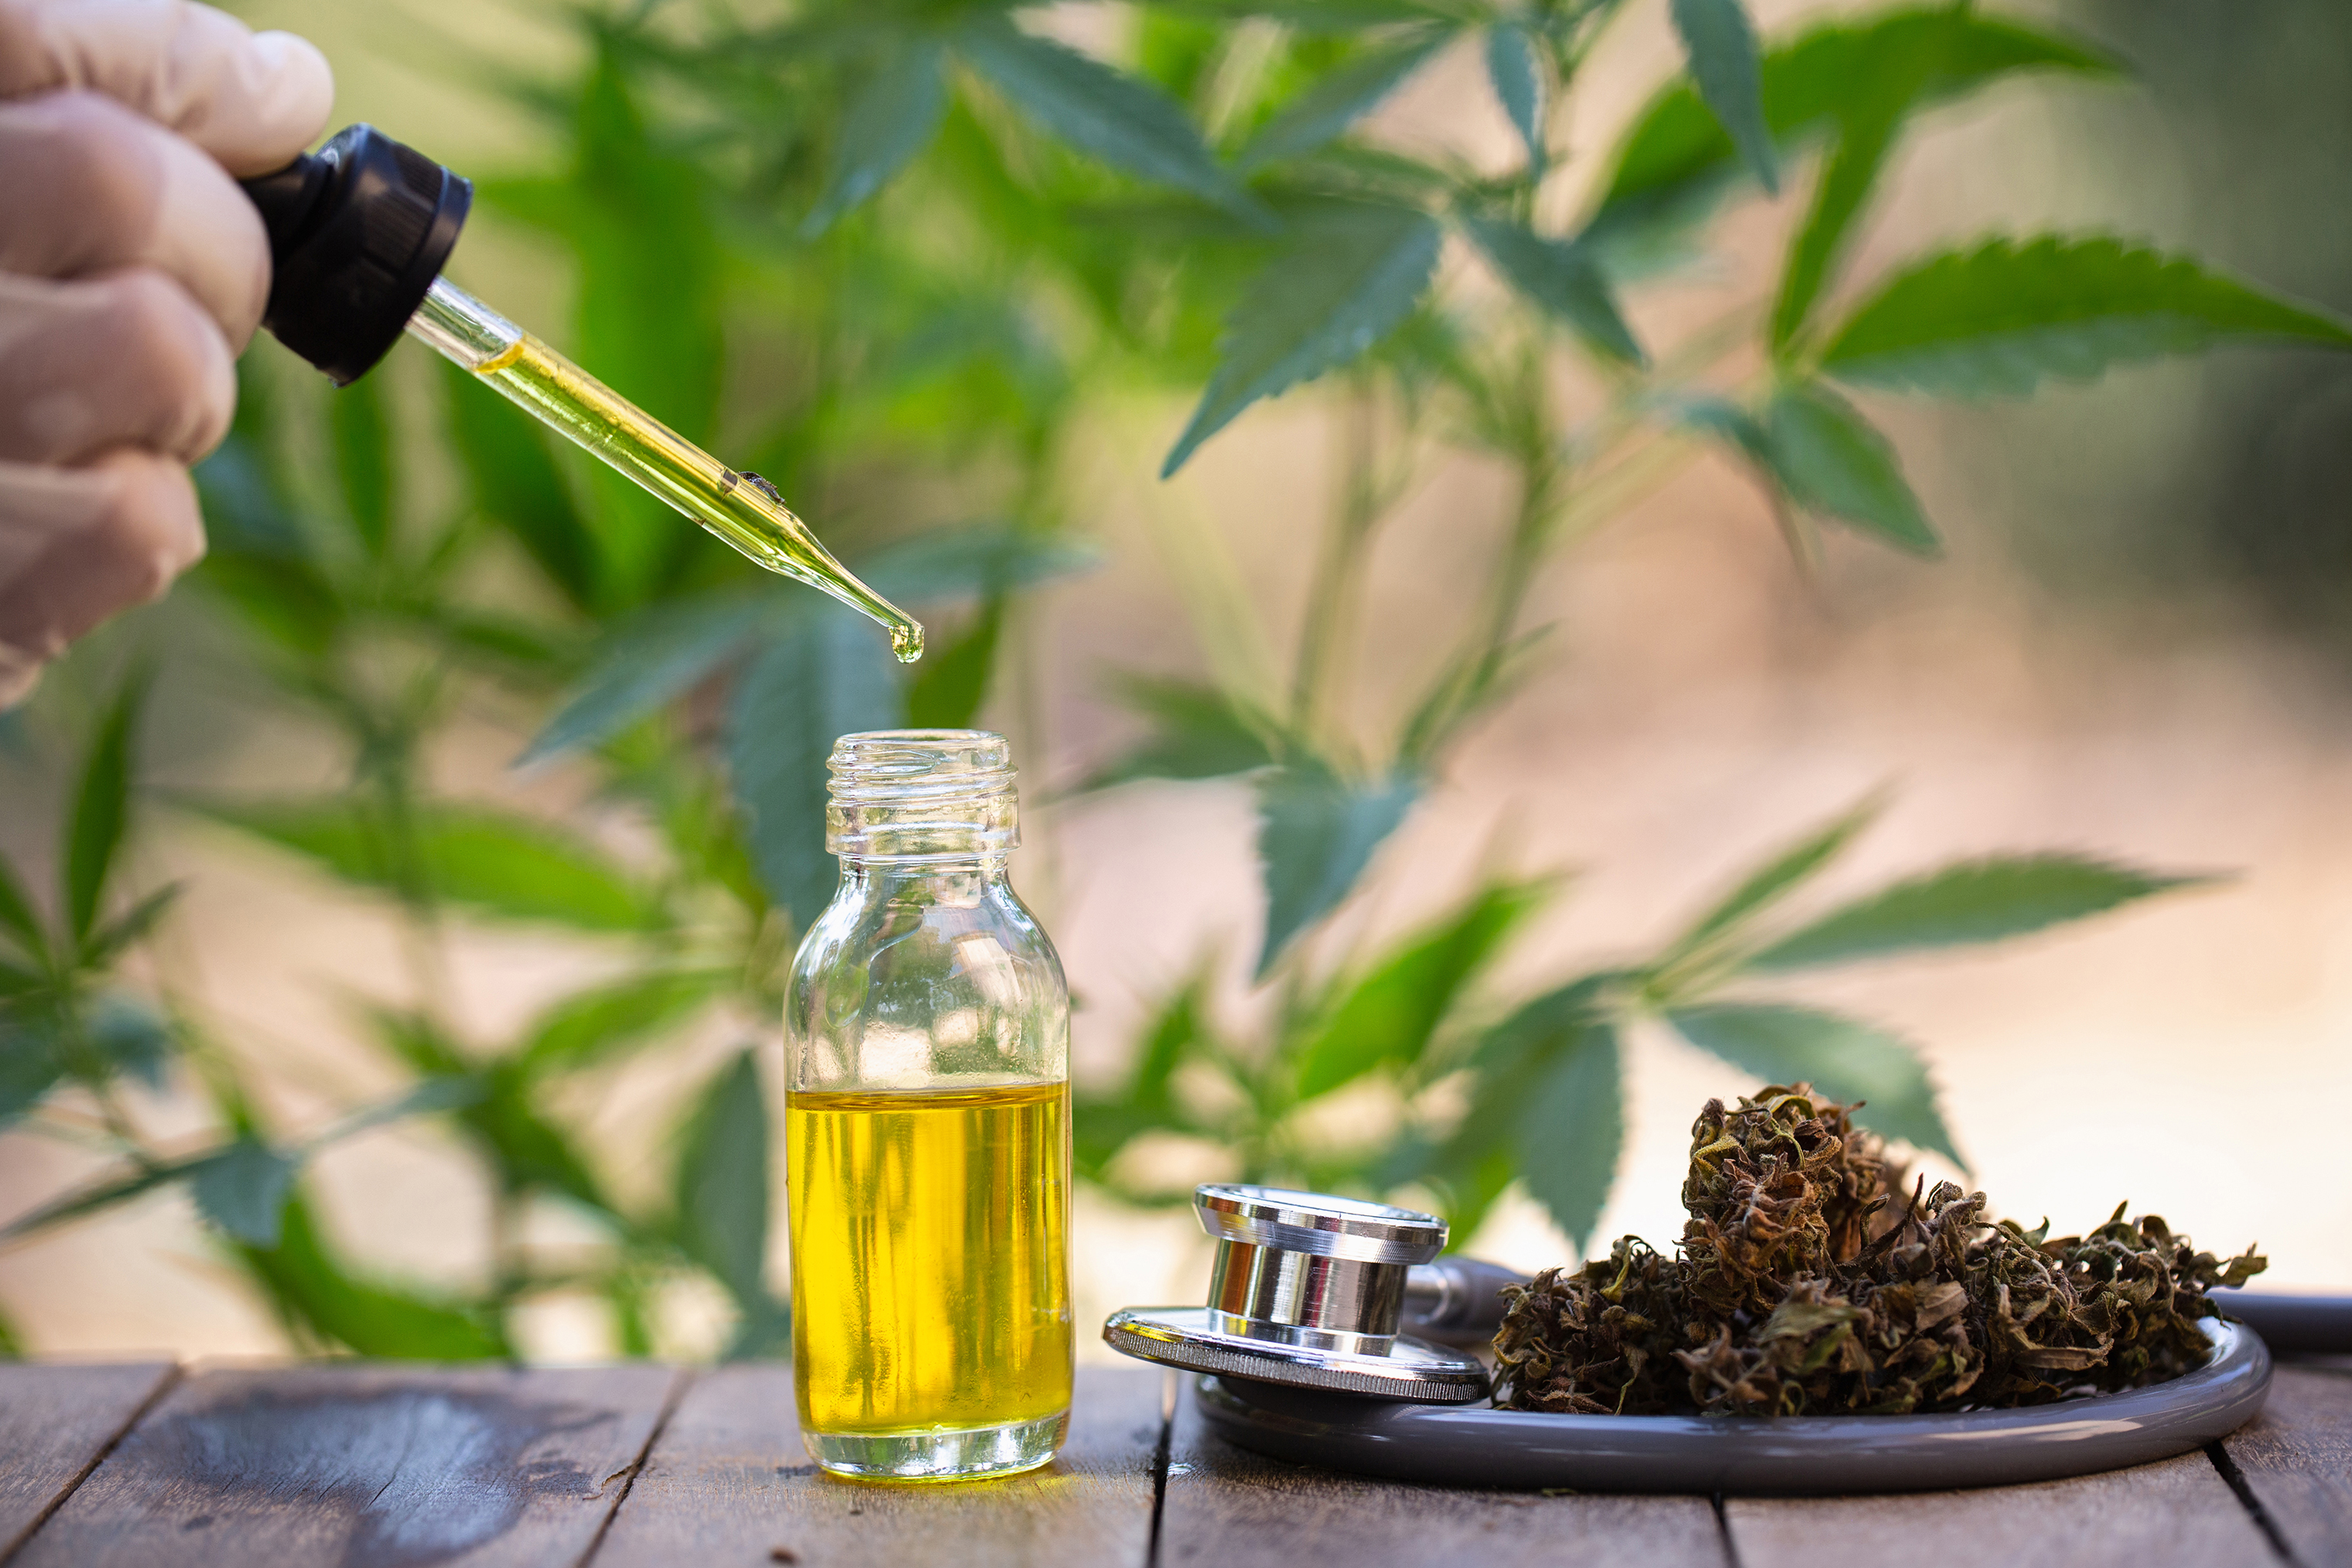 cbd oil extract